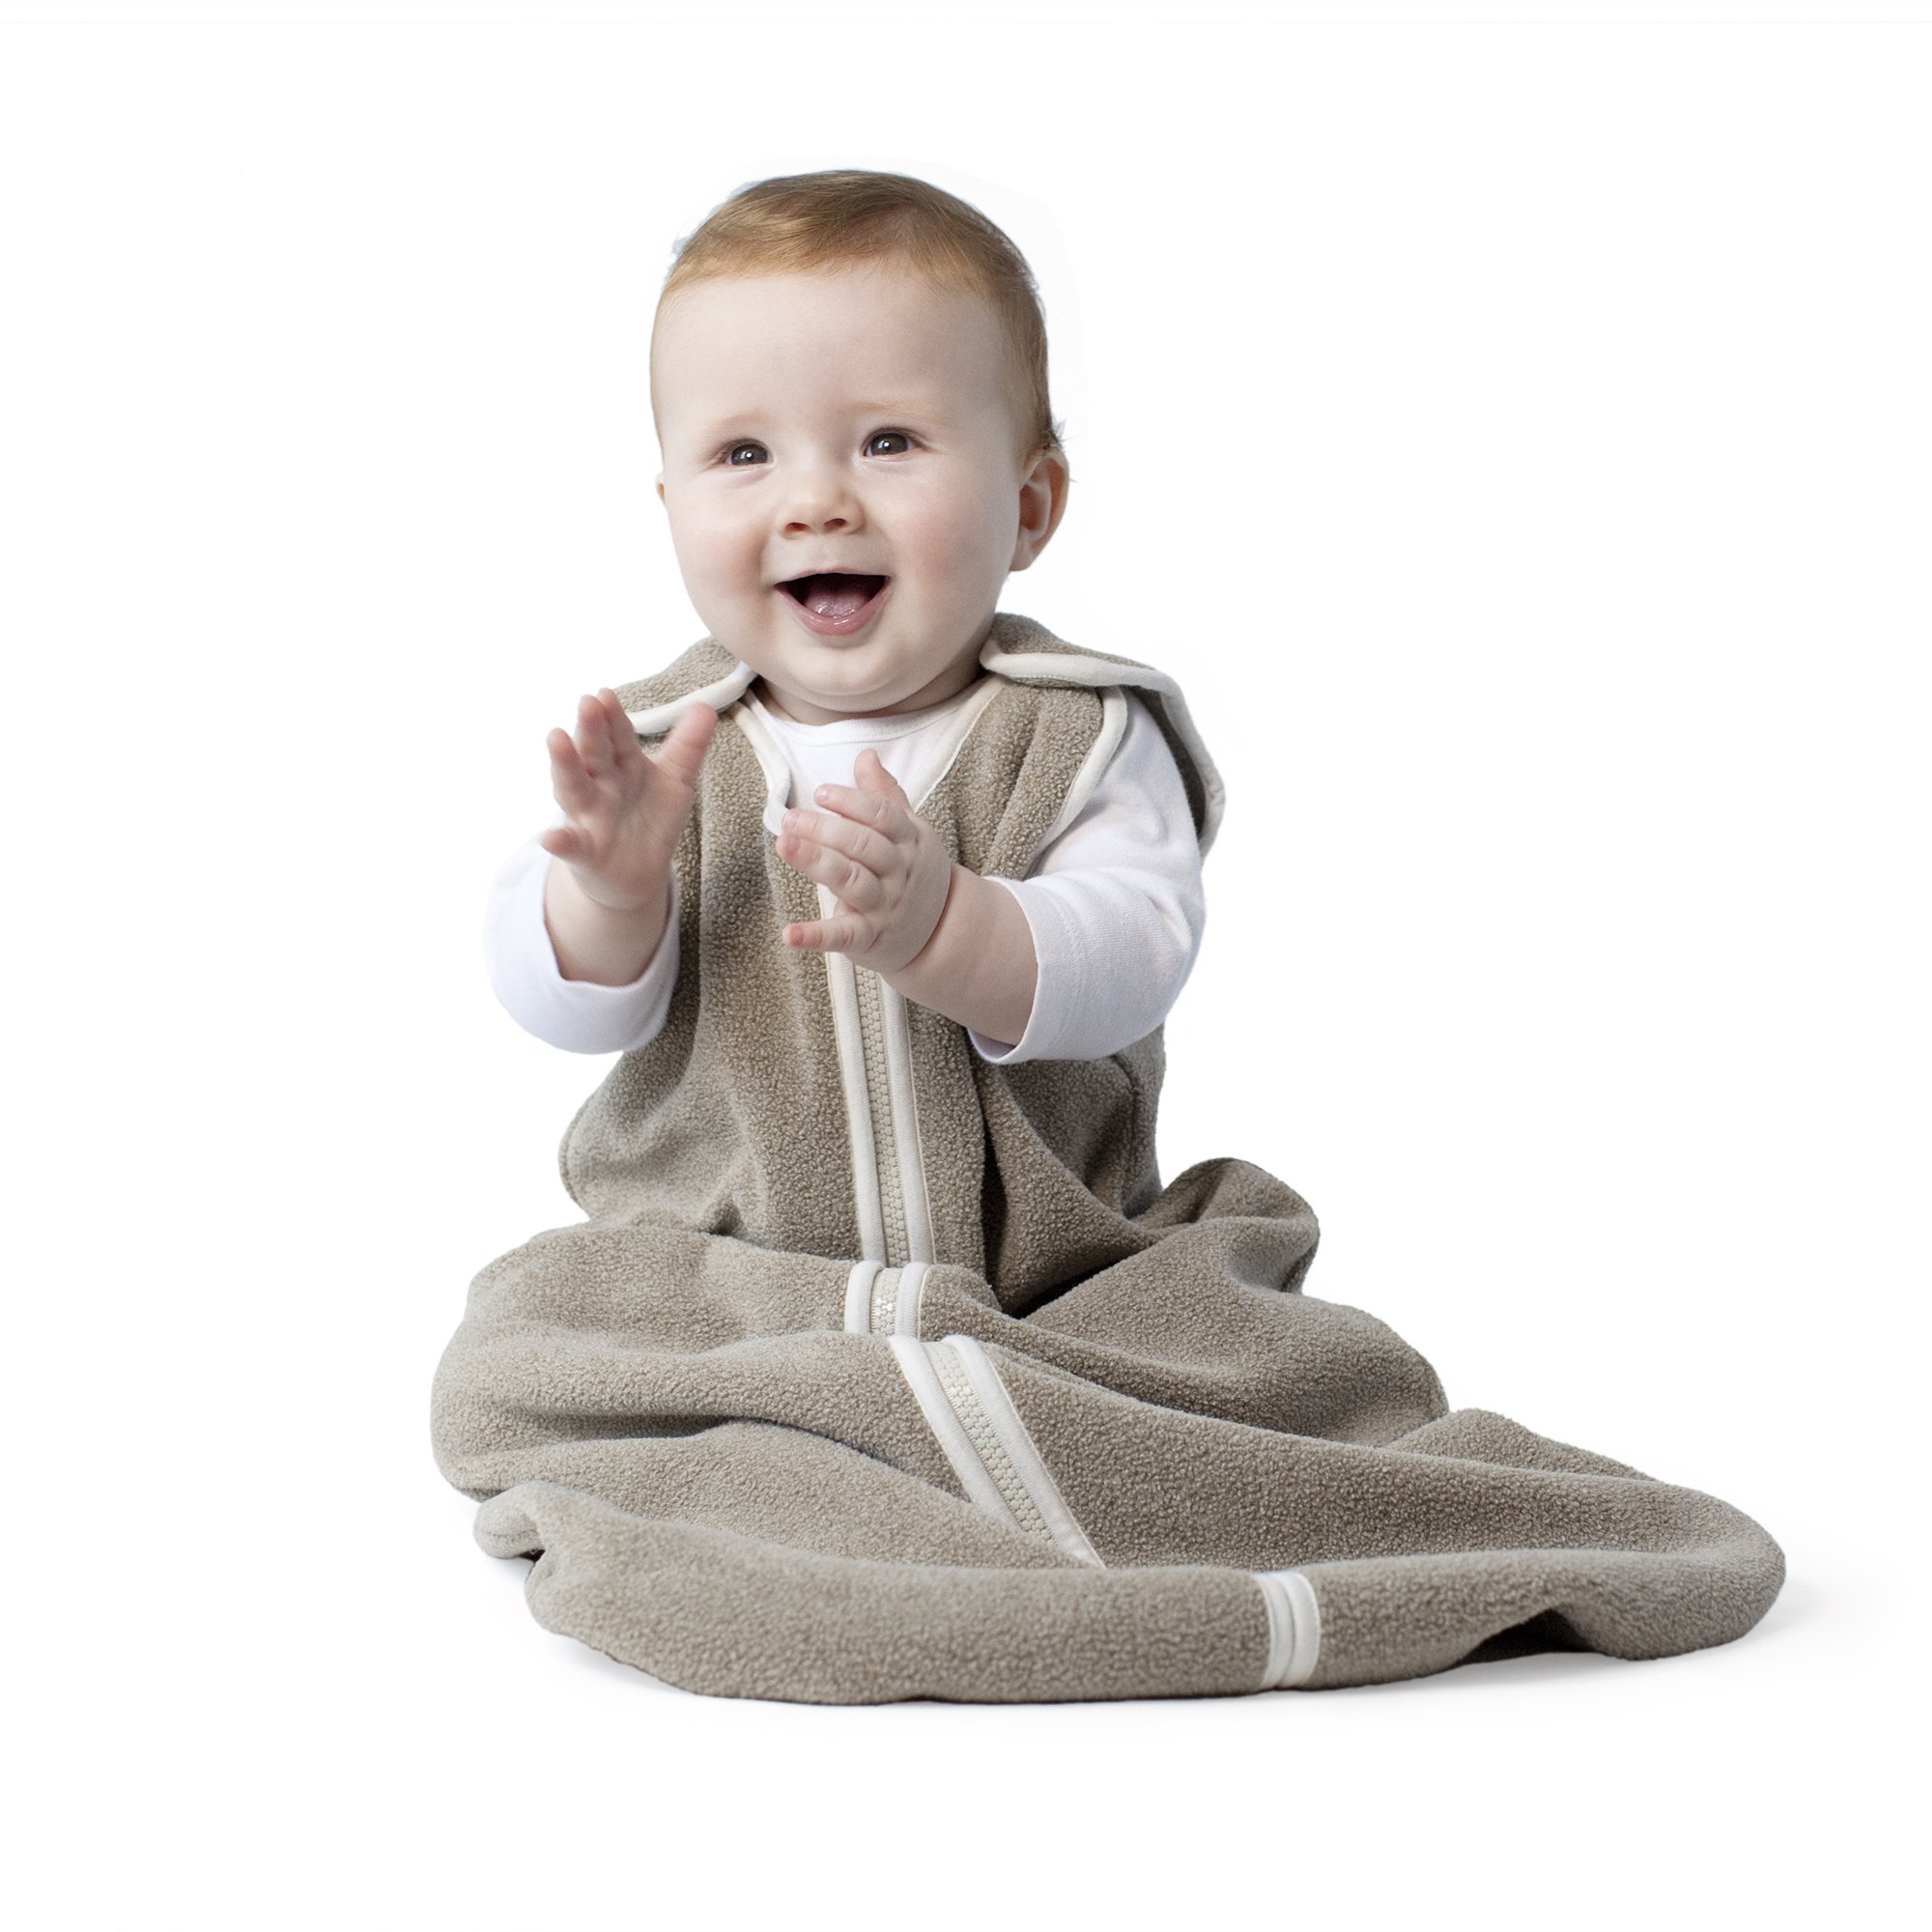 Sleep nest fleece baby sleeping bag, Mocha Heather, Large